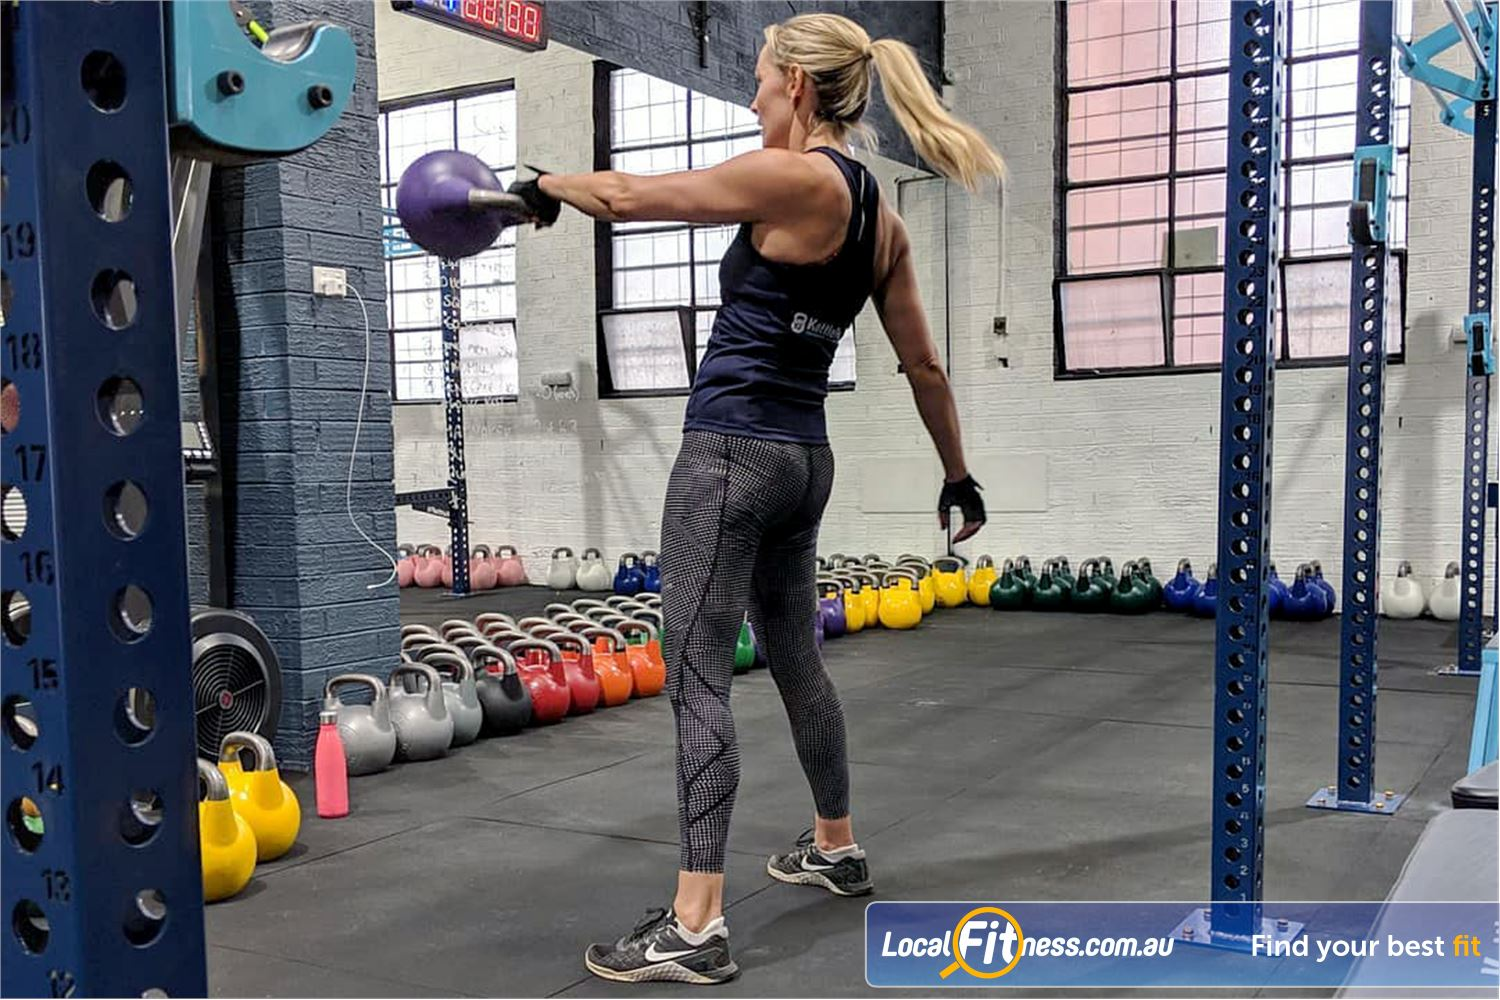 KettleFit Ascot Vale Near Brunswick West Learn the art of the Kettbell swing and swing your way to fitness.